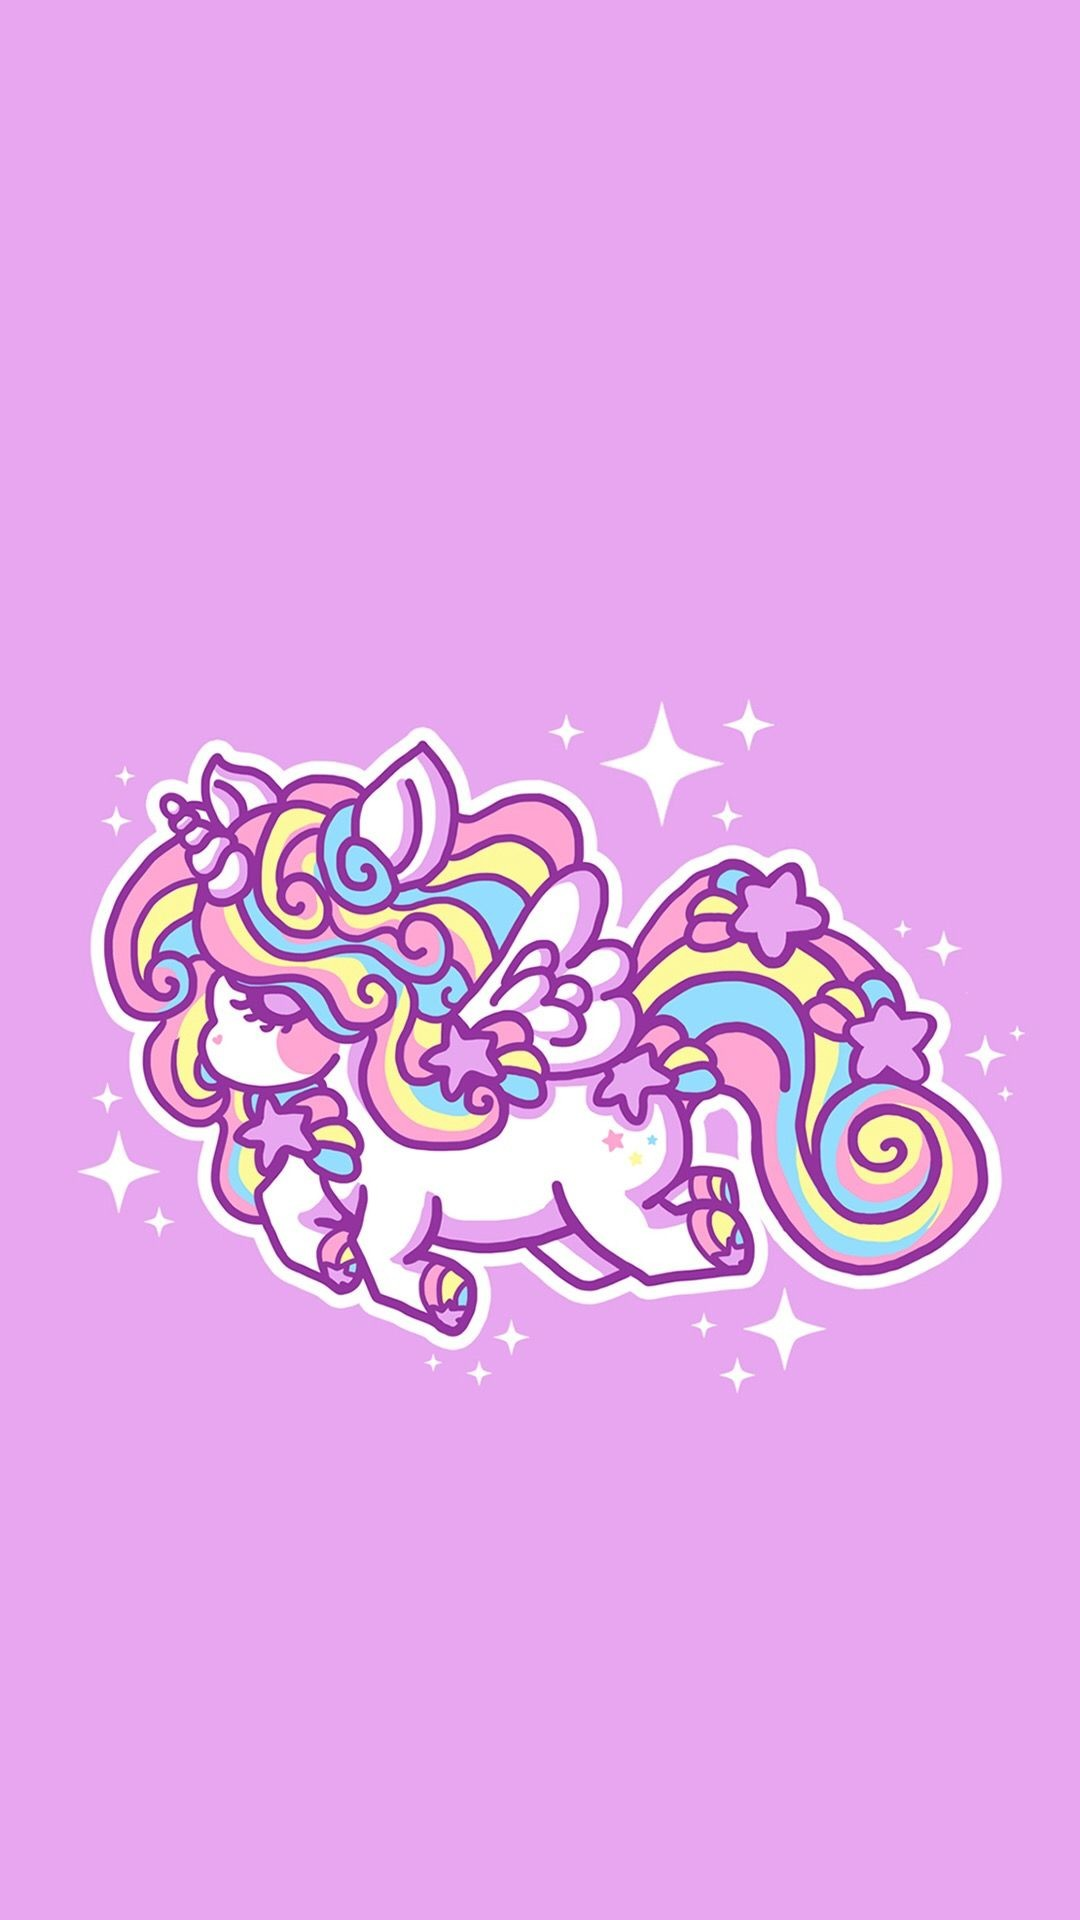 Res: 1080x1920, Iphone Wallpapers, Png, Screensaver, Leprechaun, Rock Painting, Kawaii,  Unicorn Cakes, Conch Fritters, Unicorns